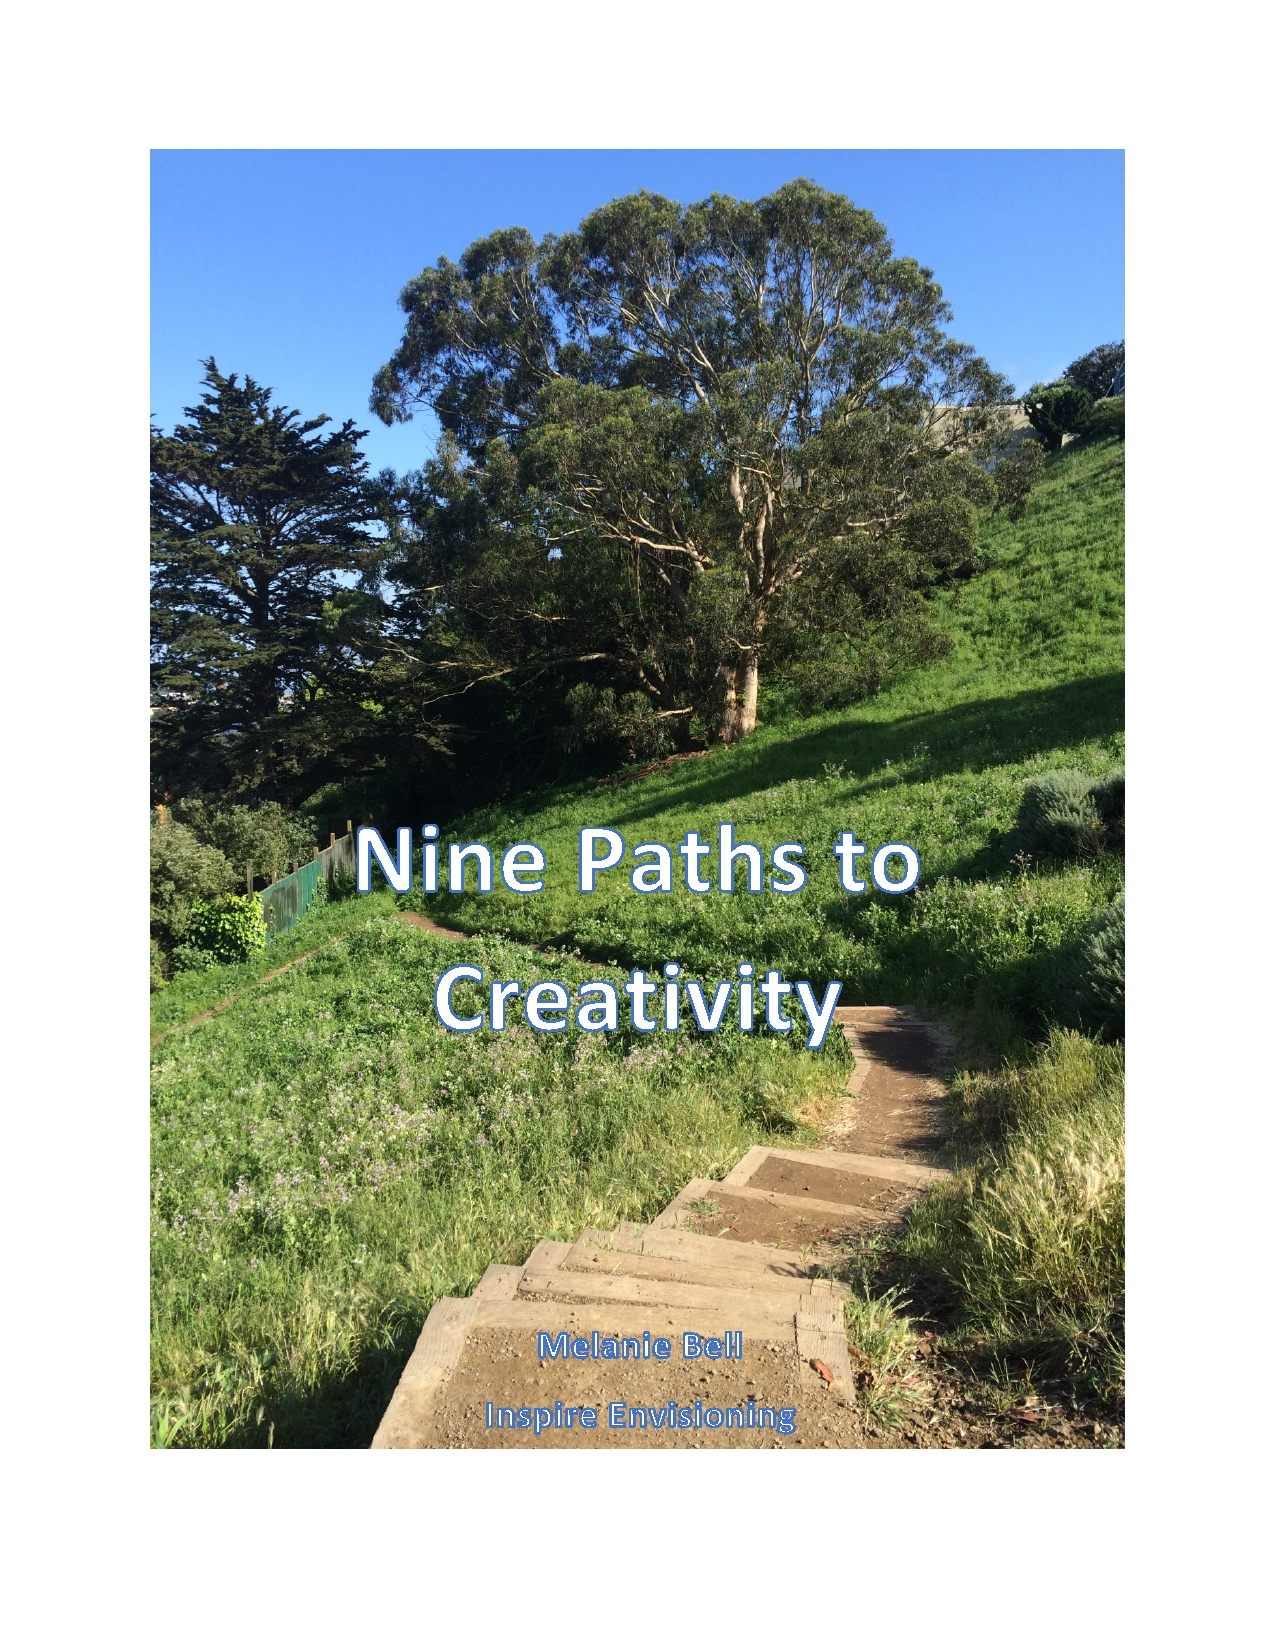 Nine paths to creativity cover page0001